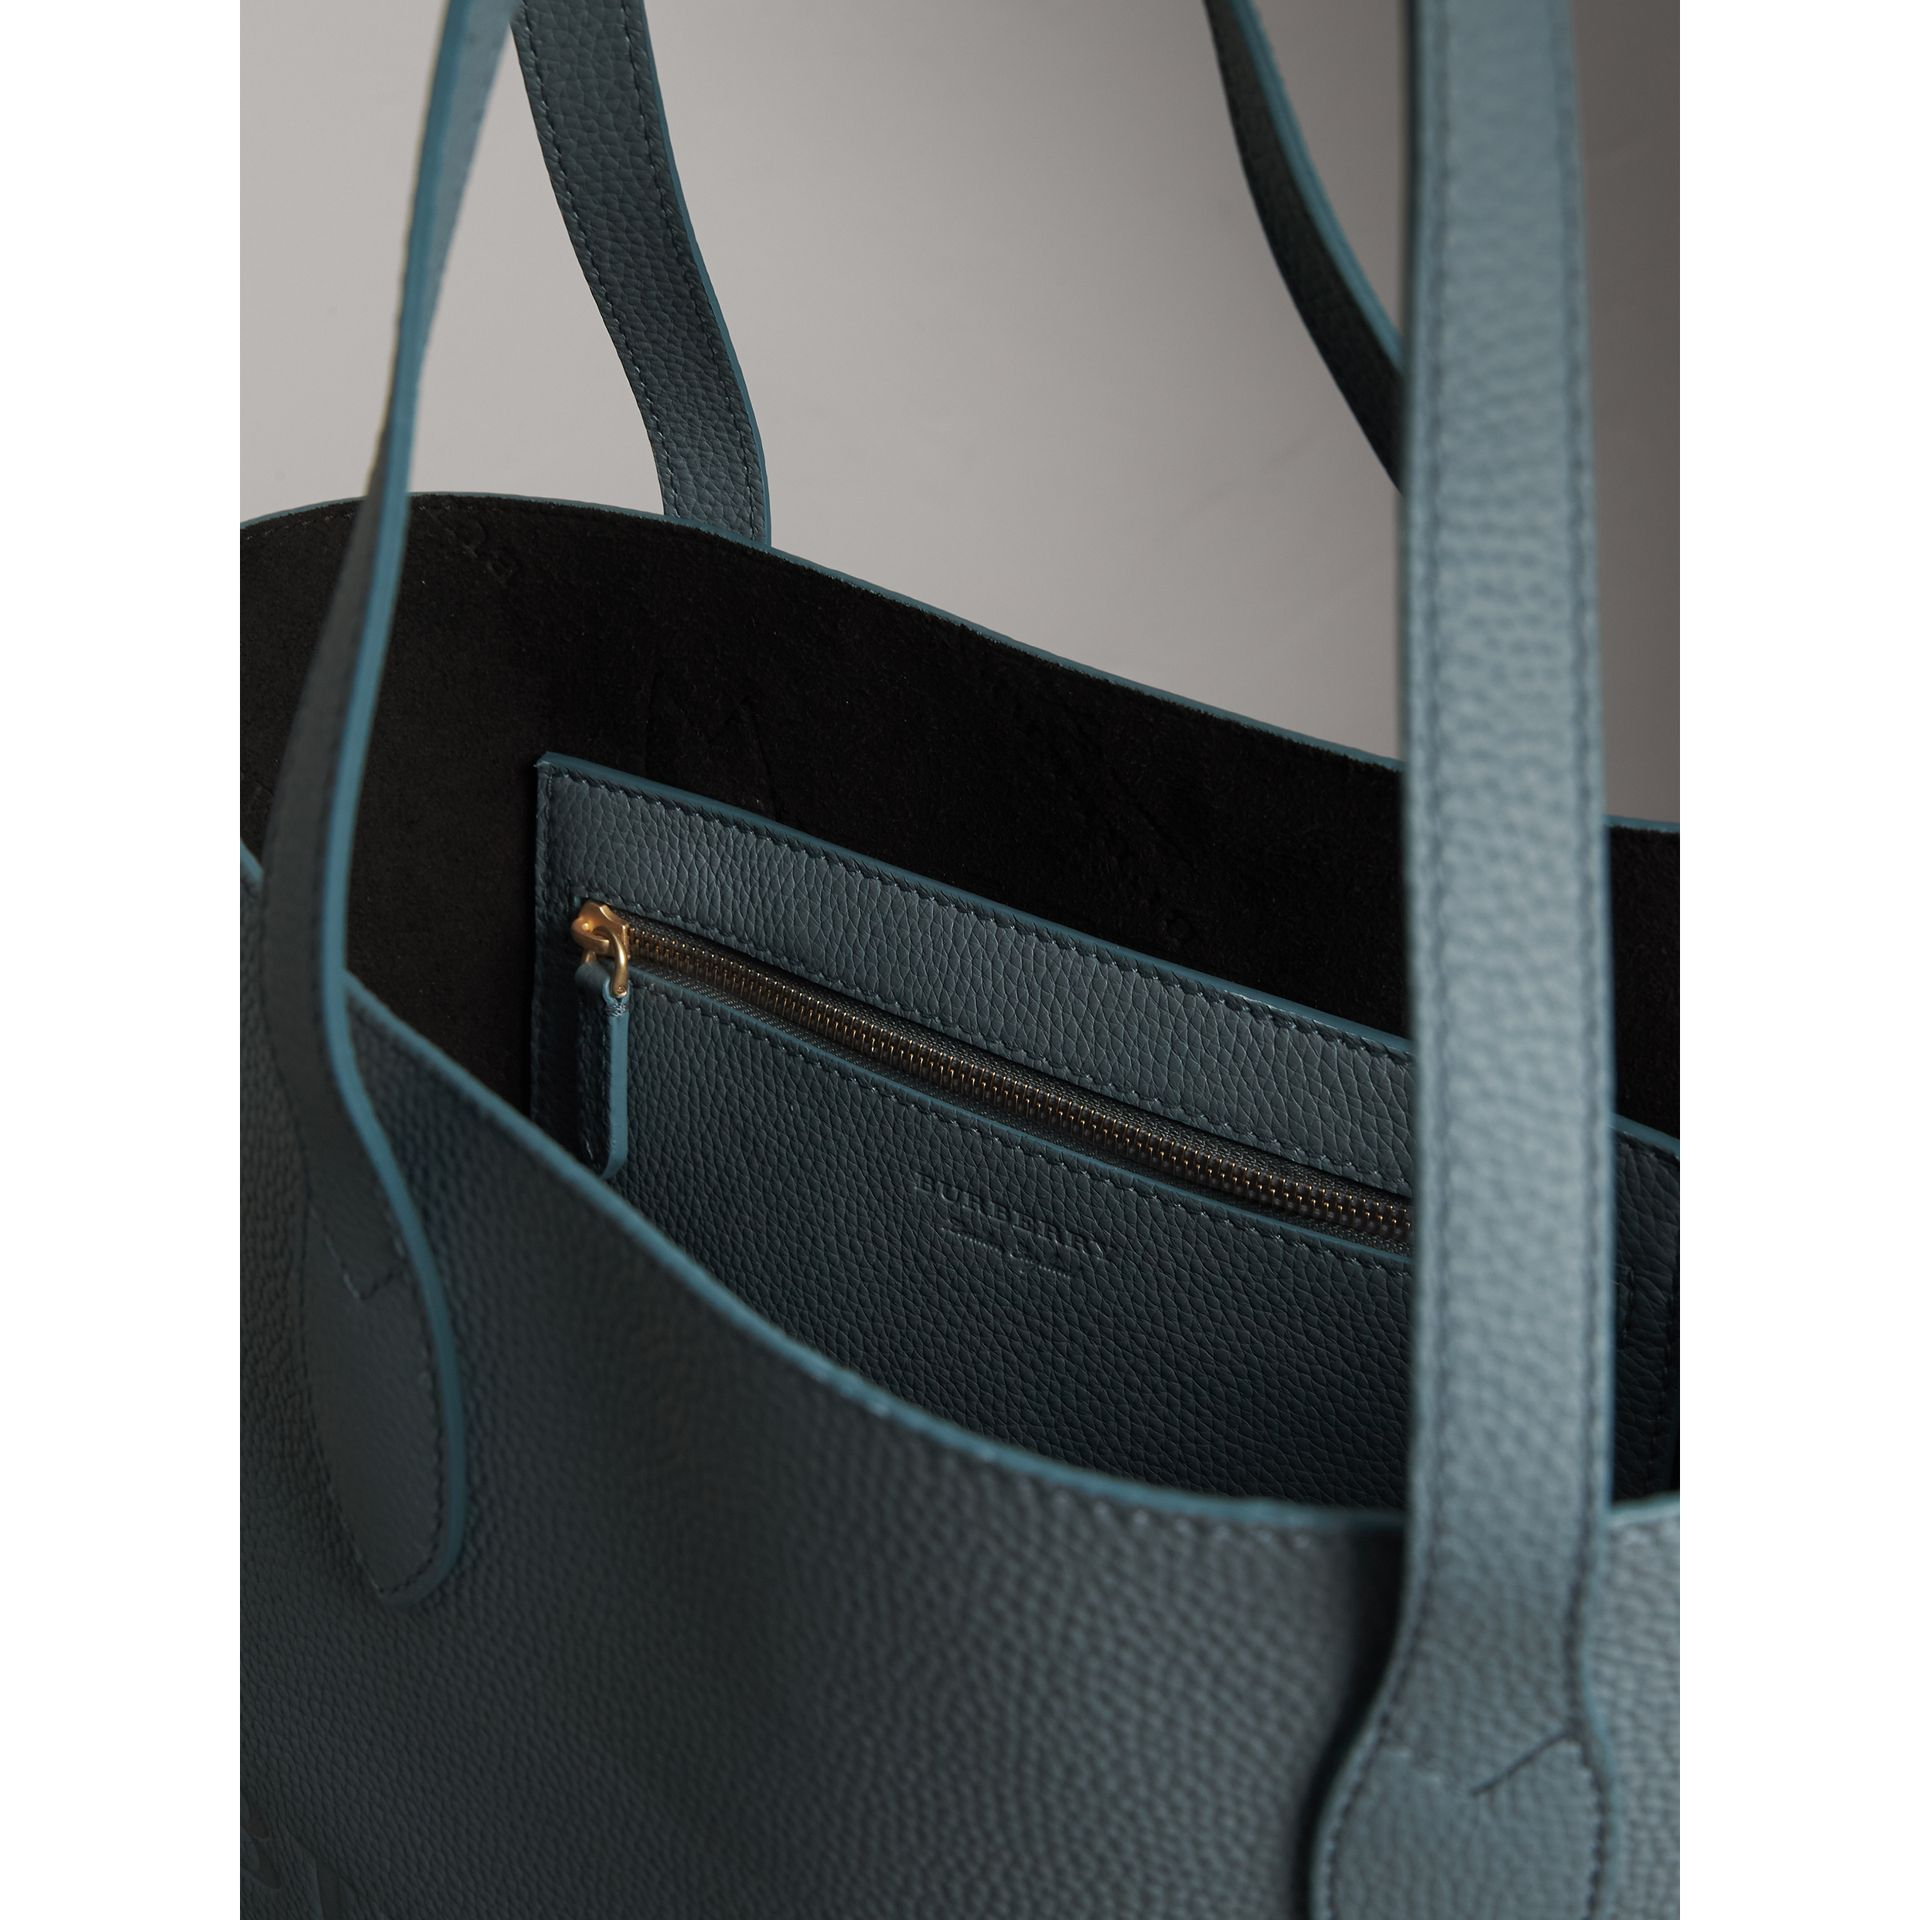 Medium Embossed Leather Tote in Dusty Teal Blue | Burberry - gallery image 6